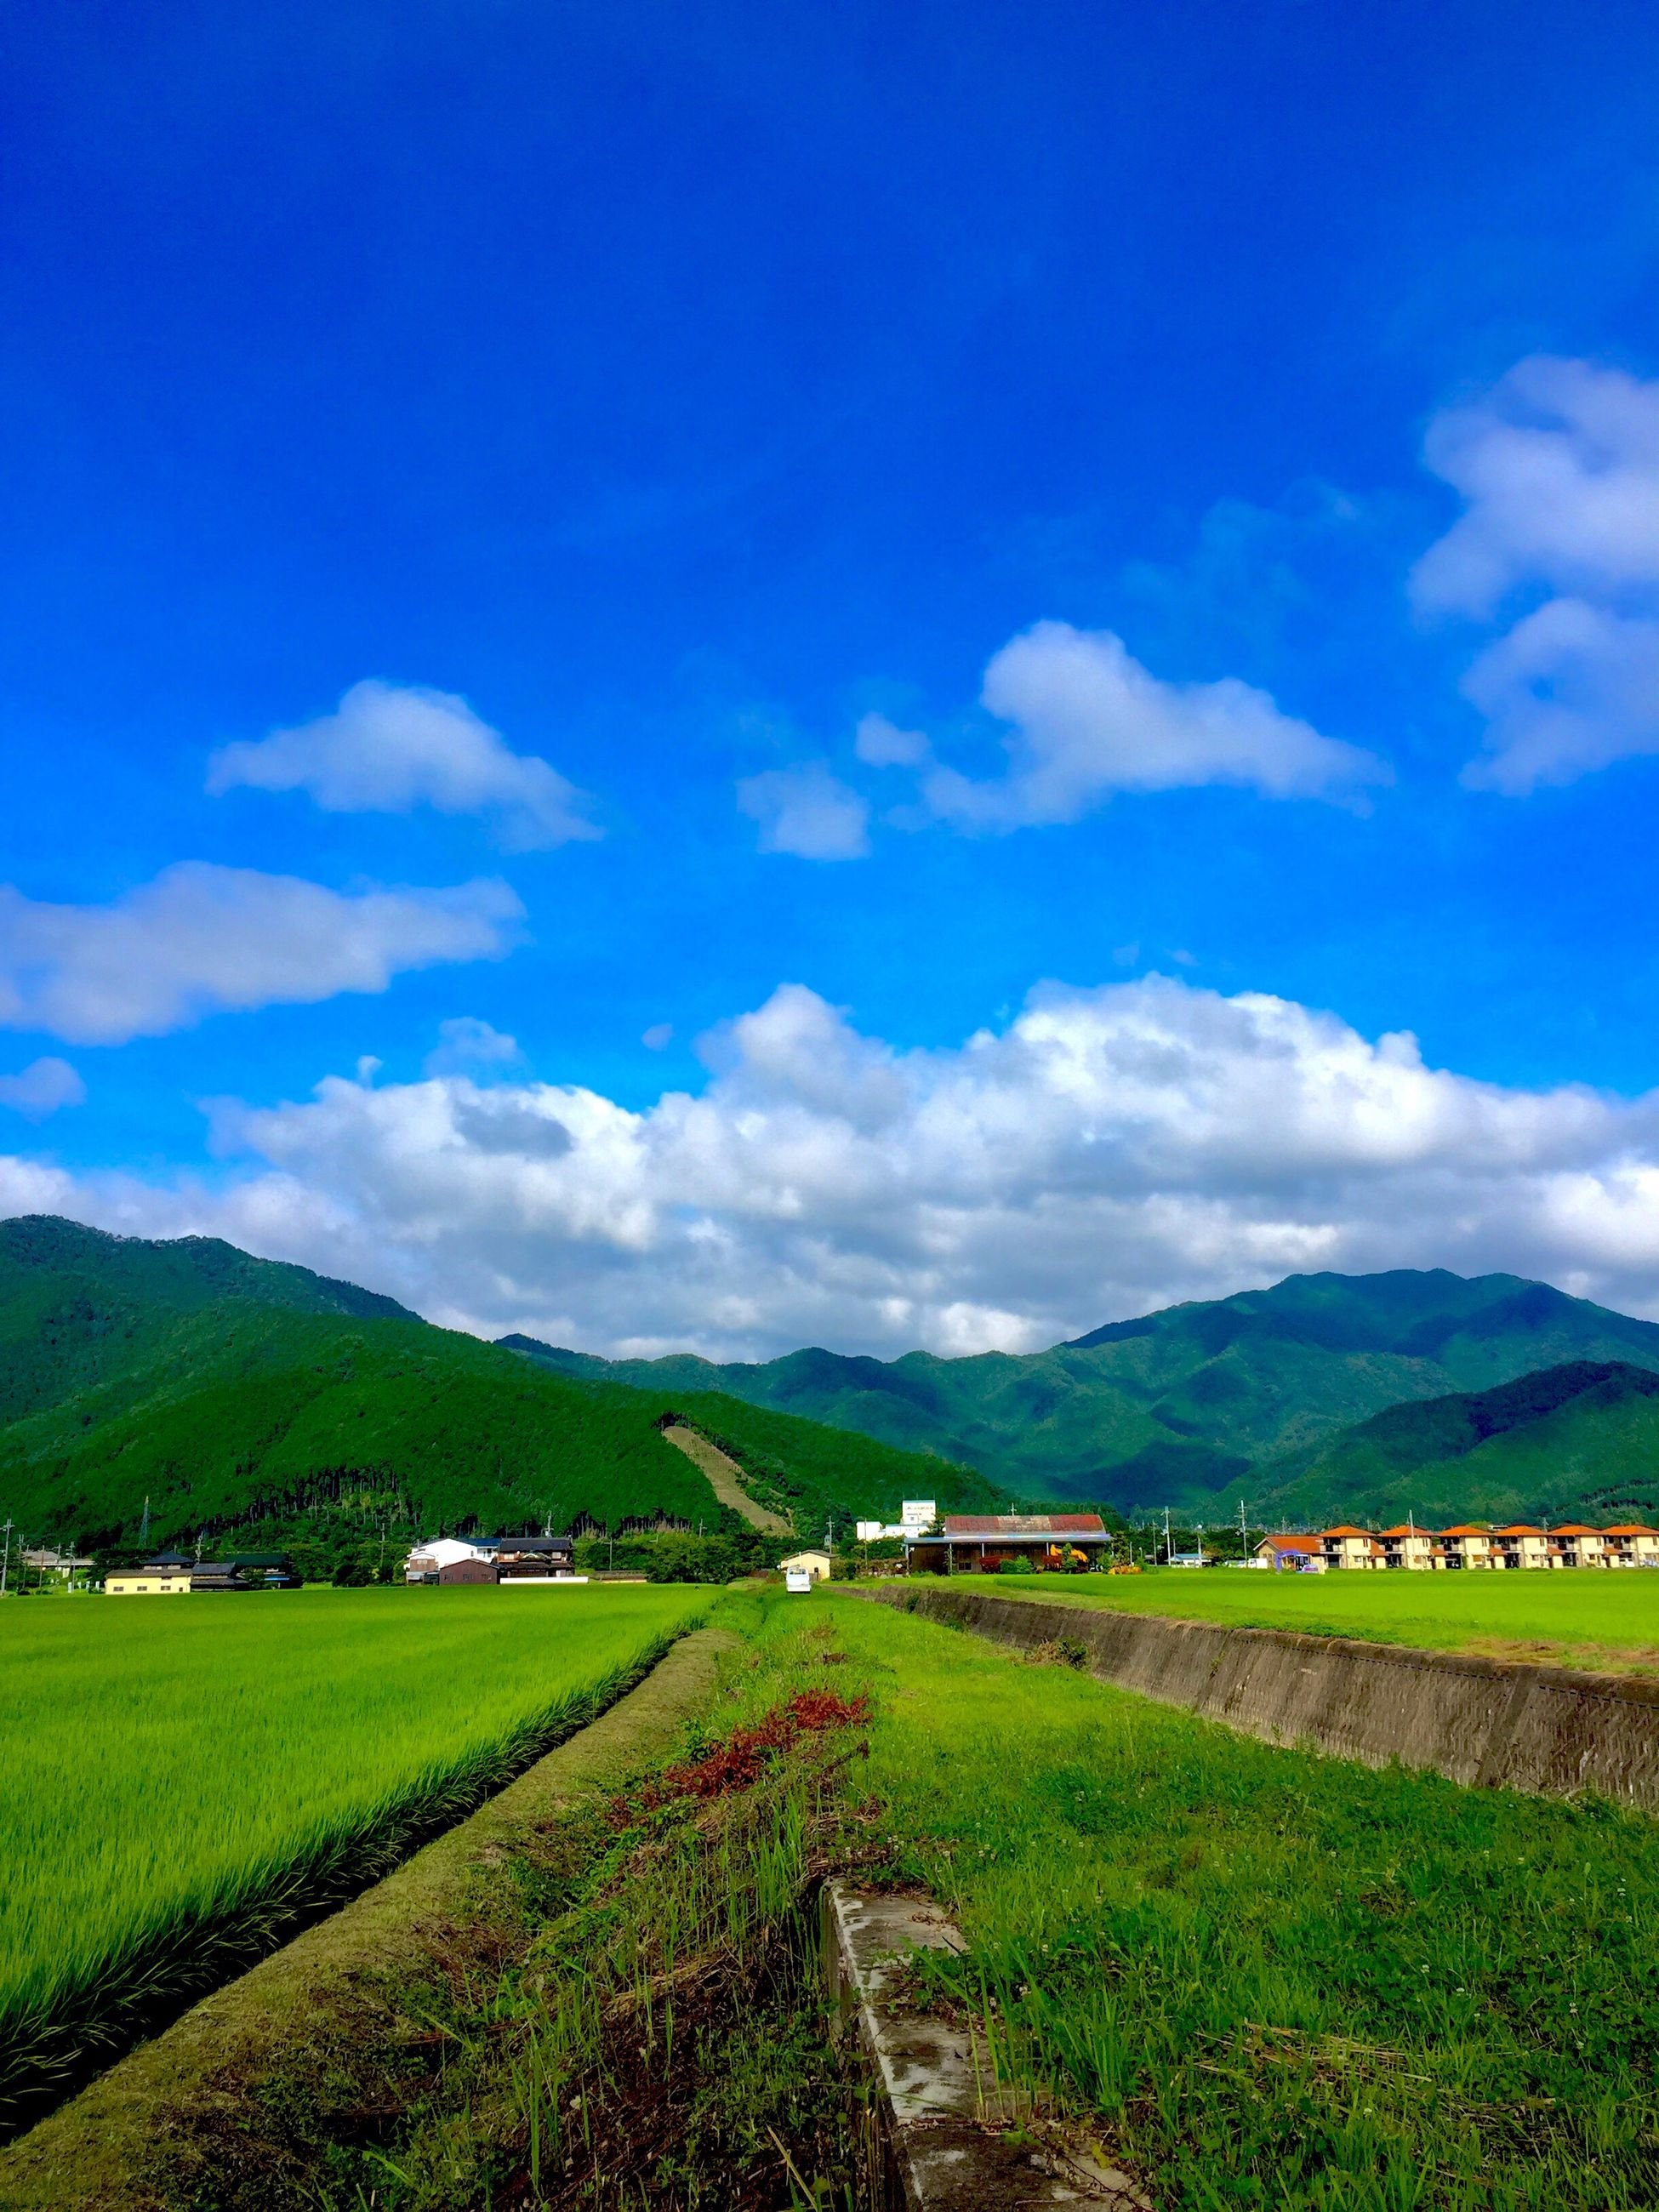 landscape, mountain, sky, grass, tranquil scene, field, tranquility, scenics, mountain range, beauty in nature, rural scene, blue, nature, agriculture, cloud, cloud - sky, green color, grassy, countryside, non-urban scene, idyllic, day, outdoors, remote, no people, growth, village, hill, horizon over land, green, cloudy